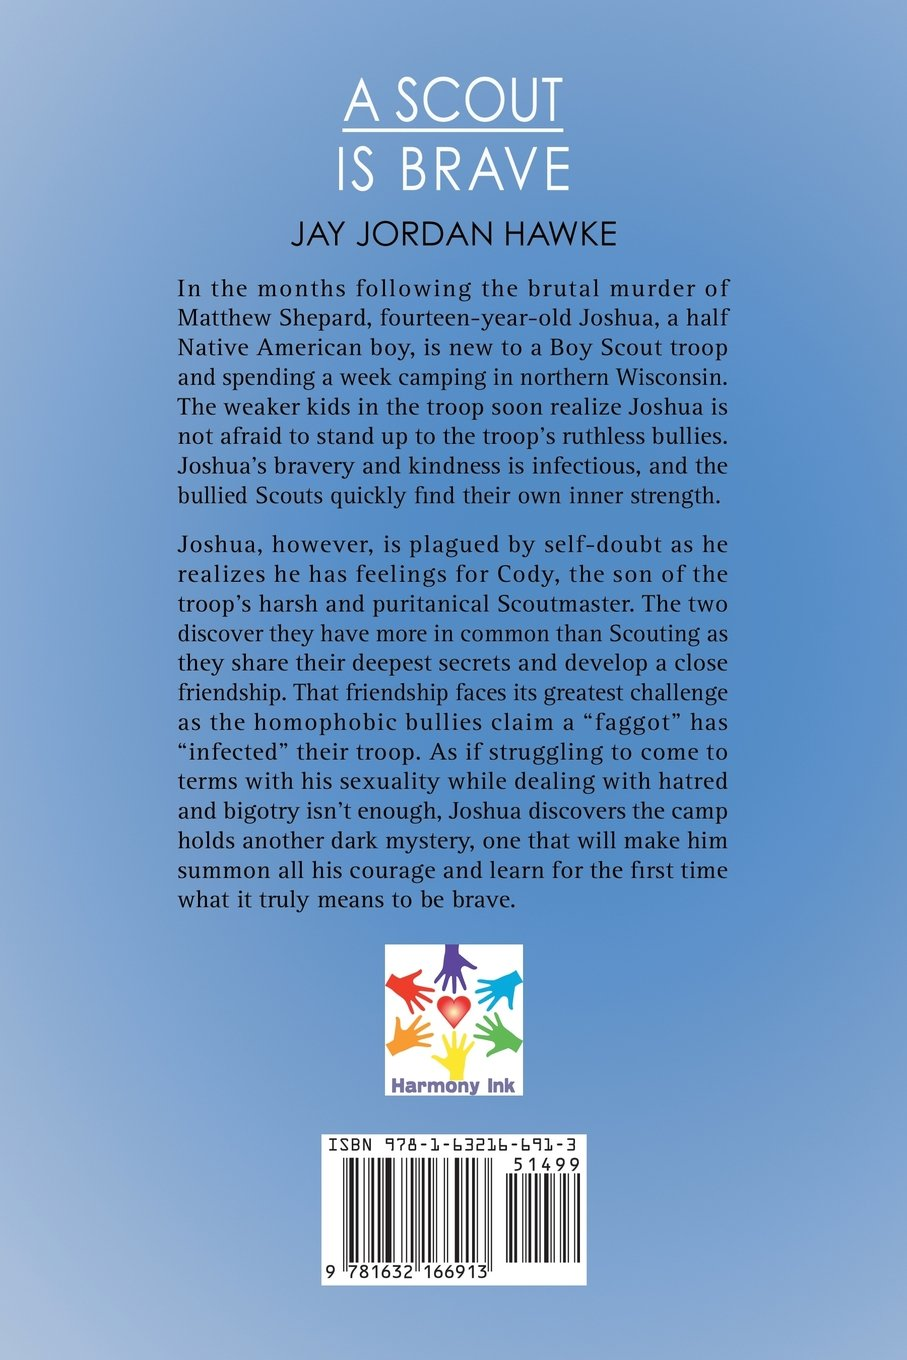 A scout is brave jay jordan hawke 9781632166913 amazon books fandeluxe Images